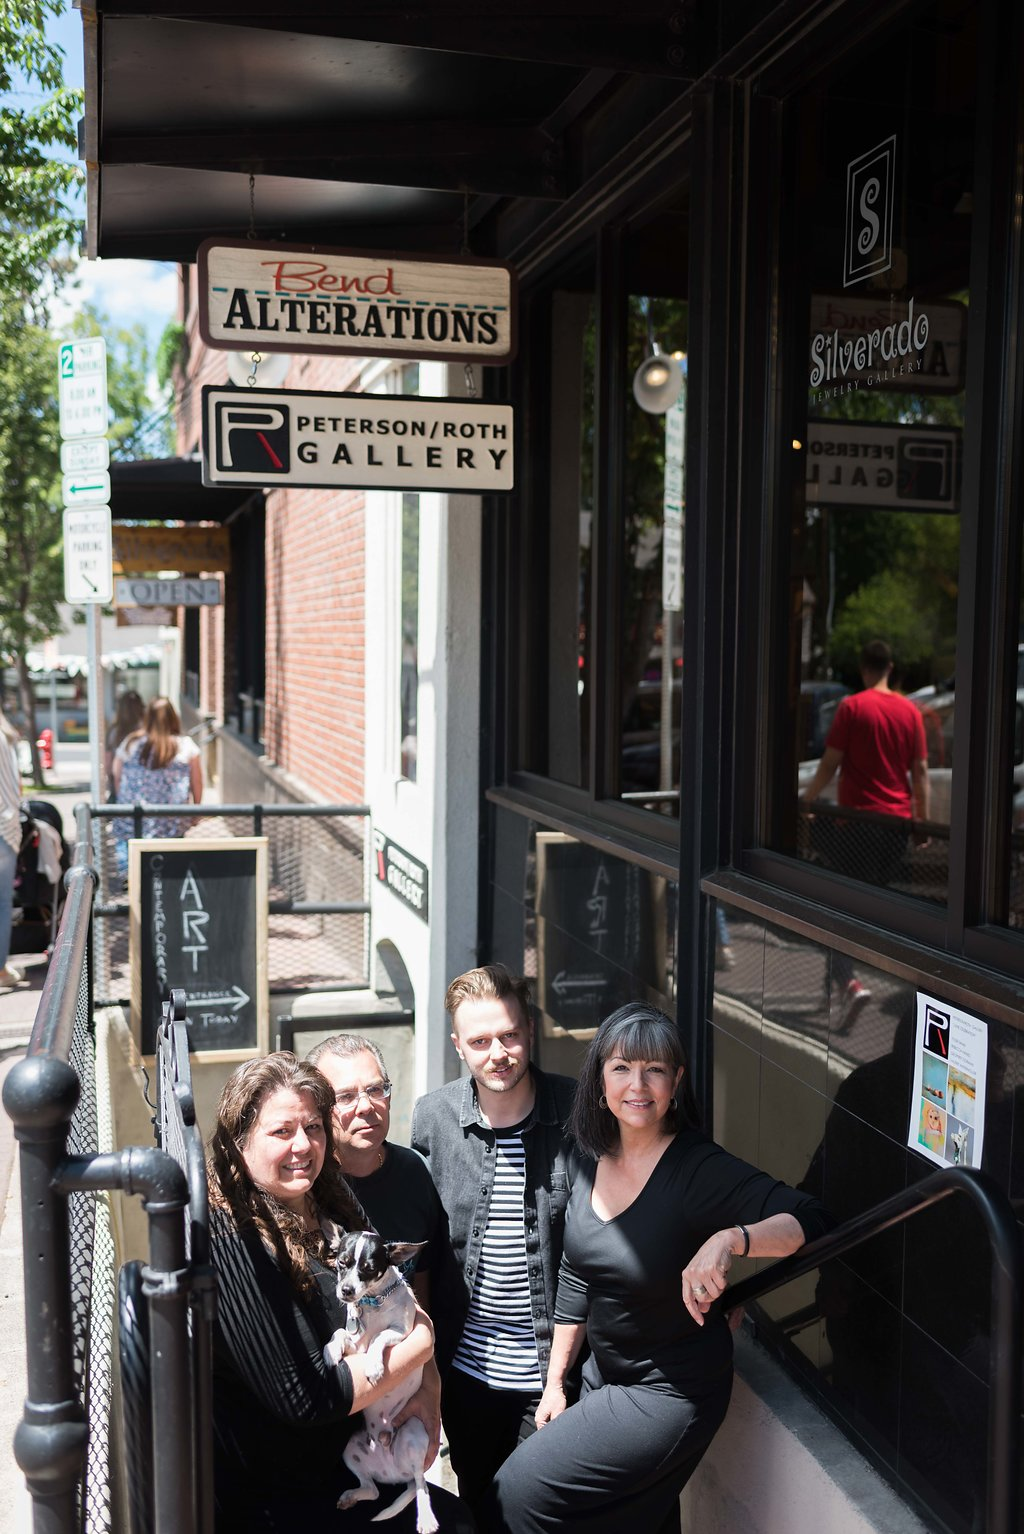 LOCATION - We're located in the heart of downtown Bend, Oregon at 206 NW Oregon Ave, Bend, OR 97703